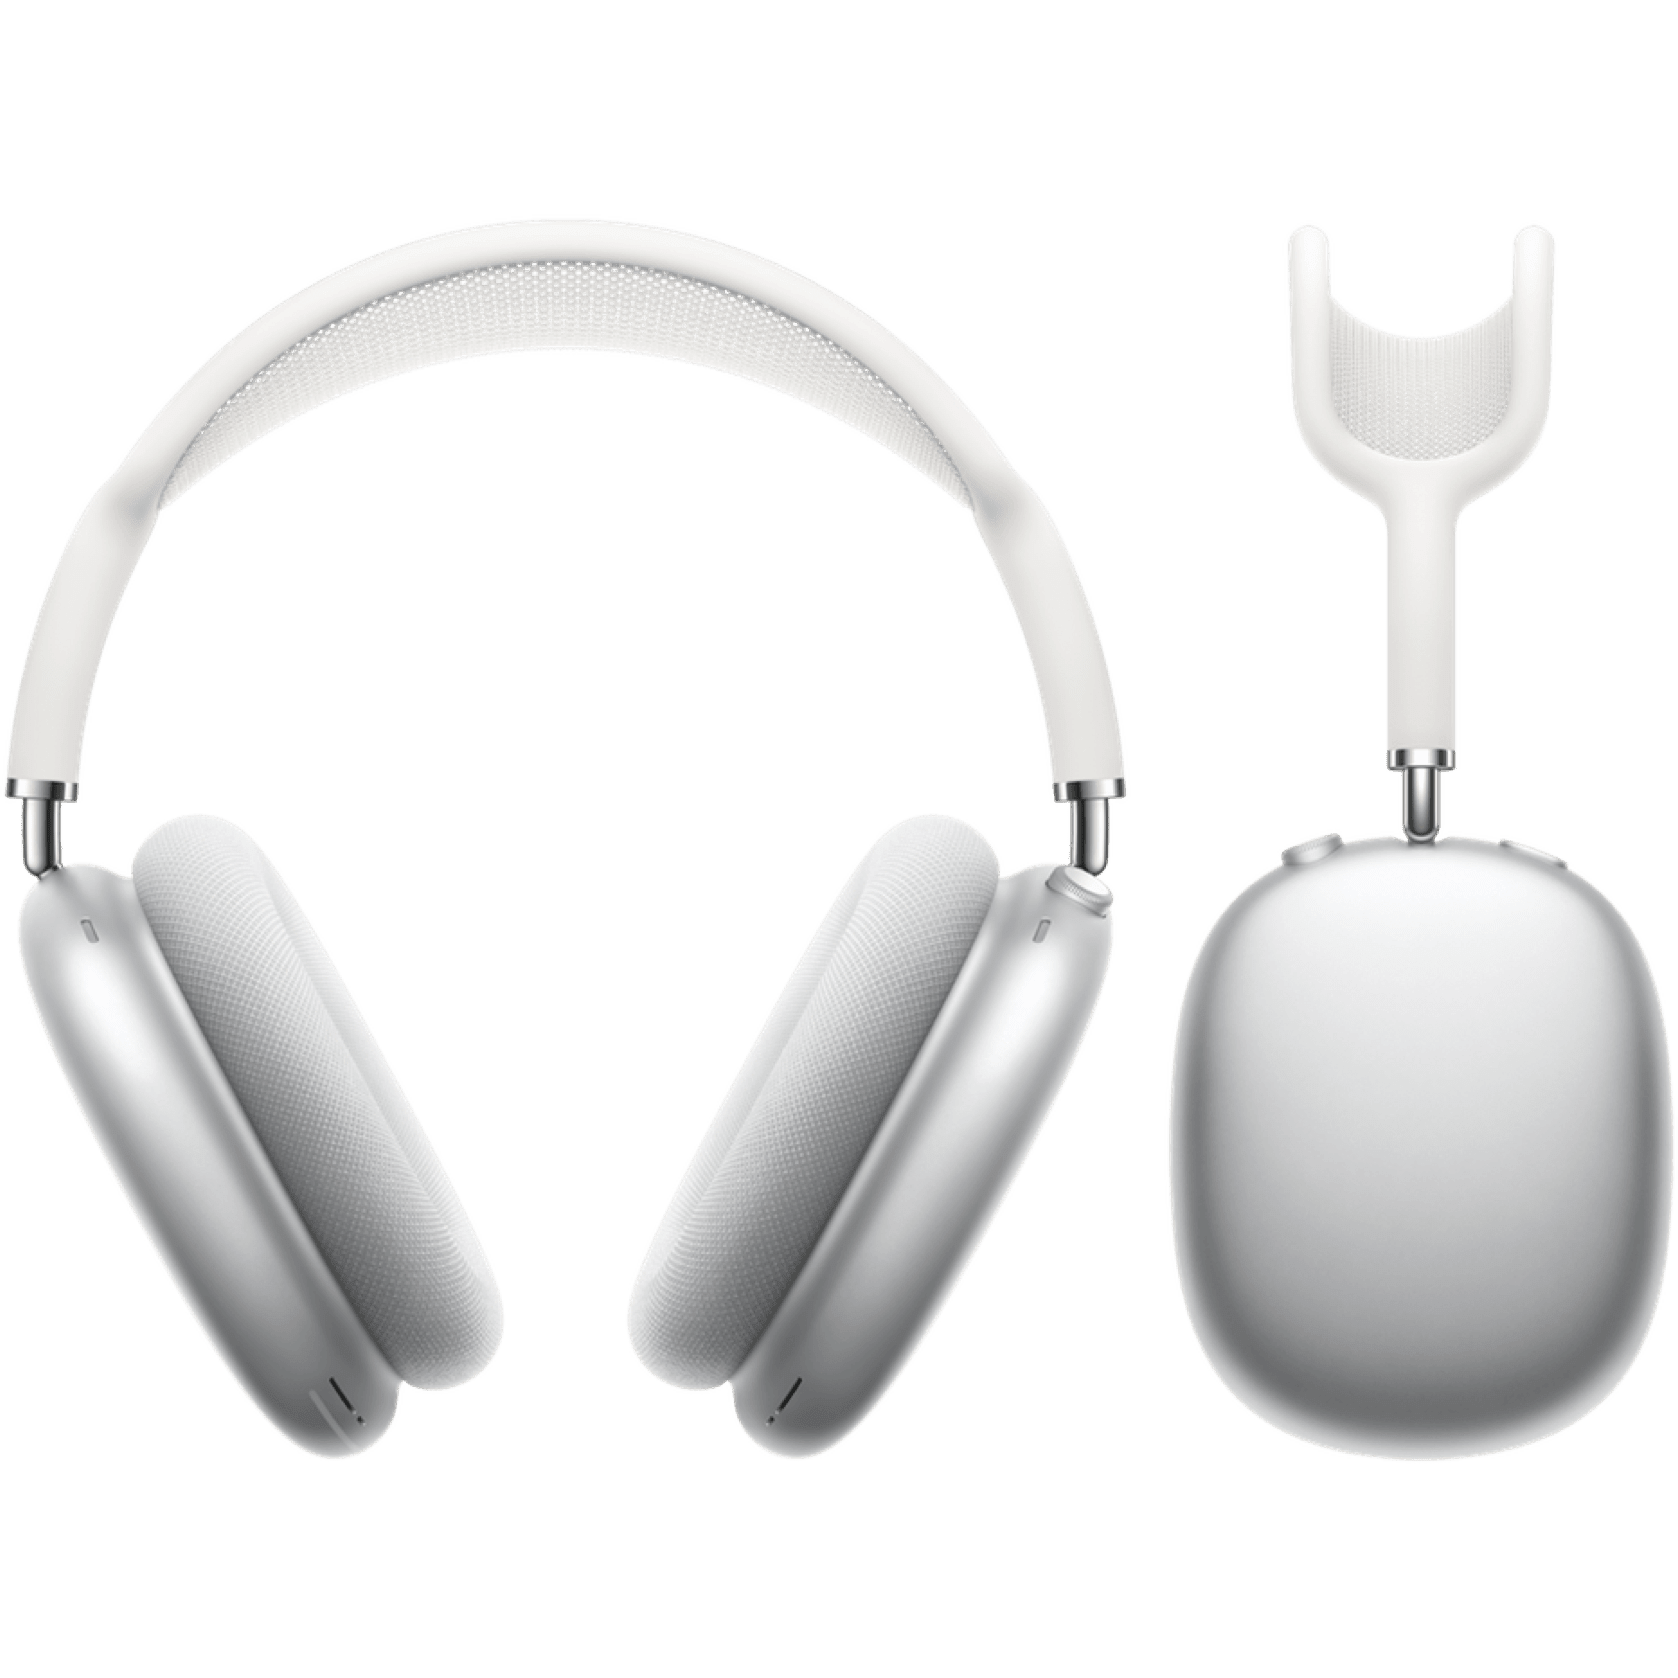 allapplenews-product-AirPods Max